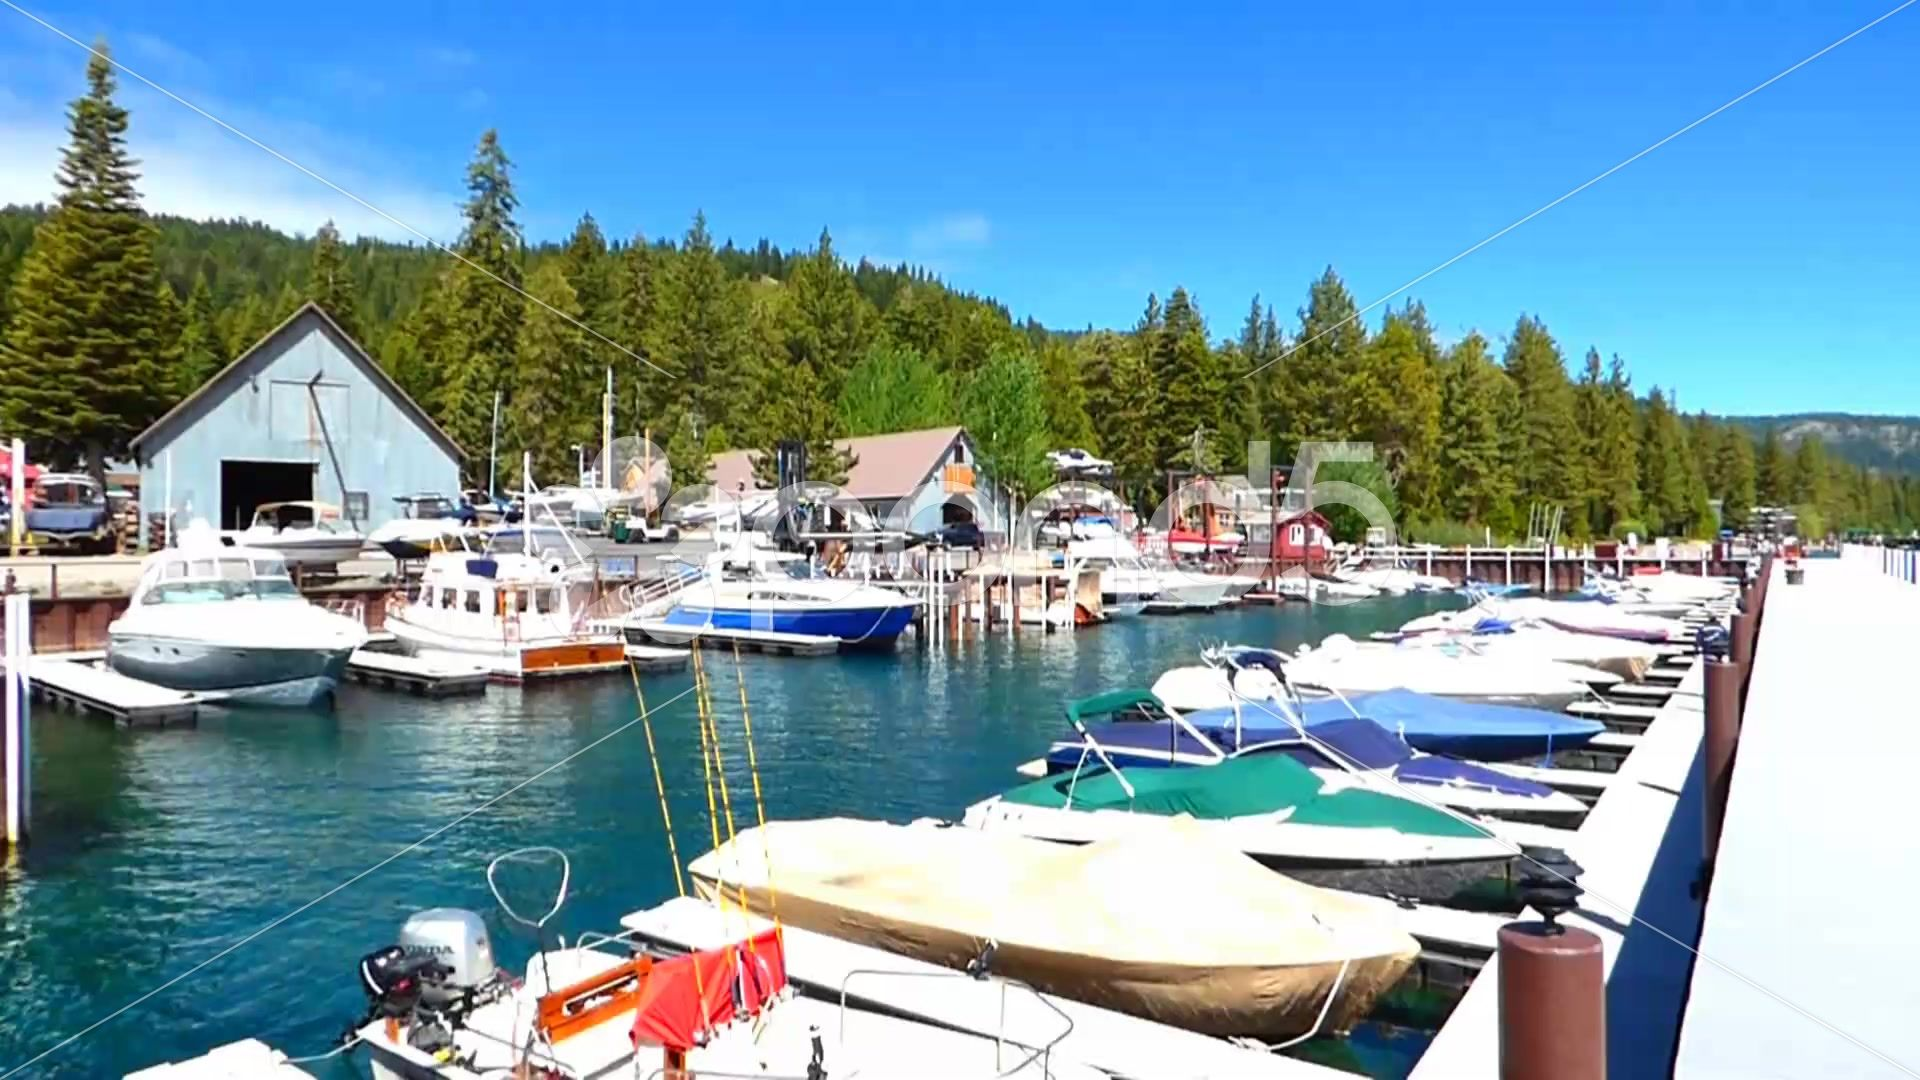 Boat Dock at Lake Tahoe Stock Footage by